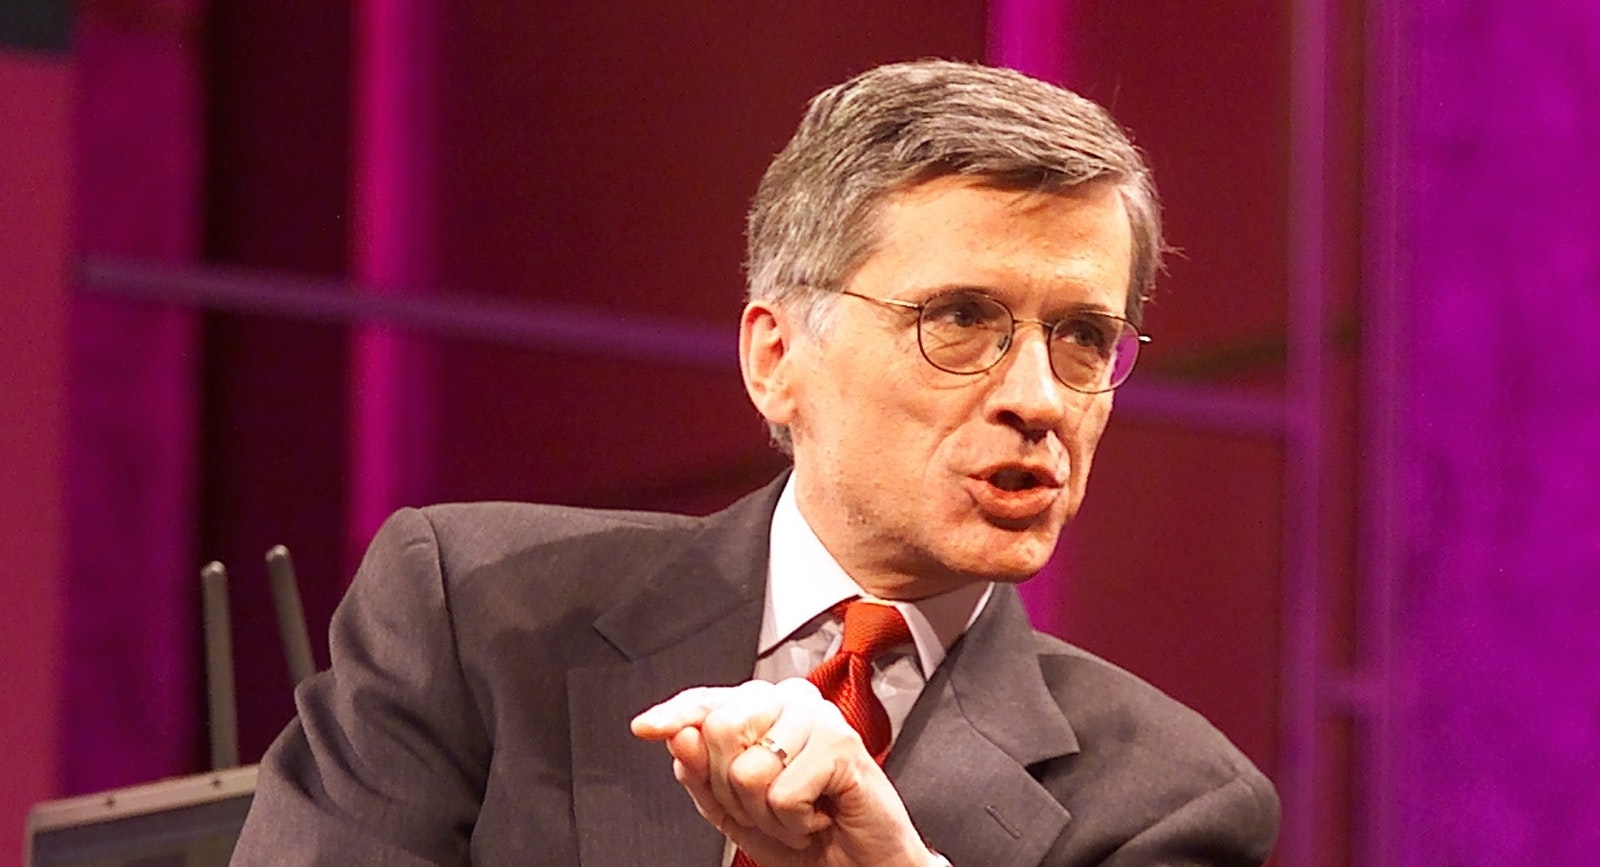 FCC Chairman Tom Wheeler. Photo by Bloomberg.